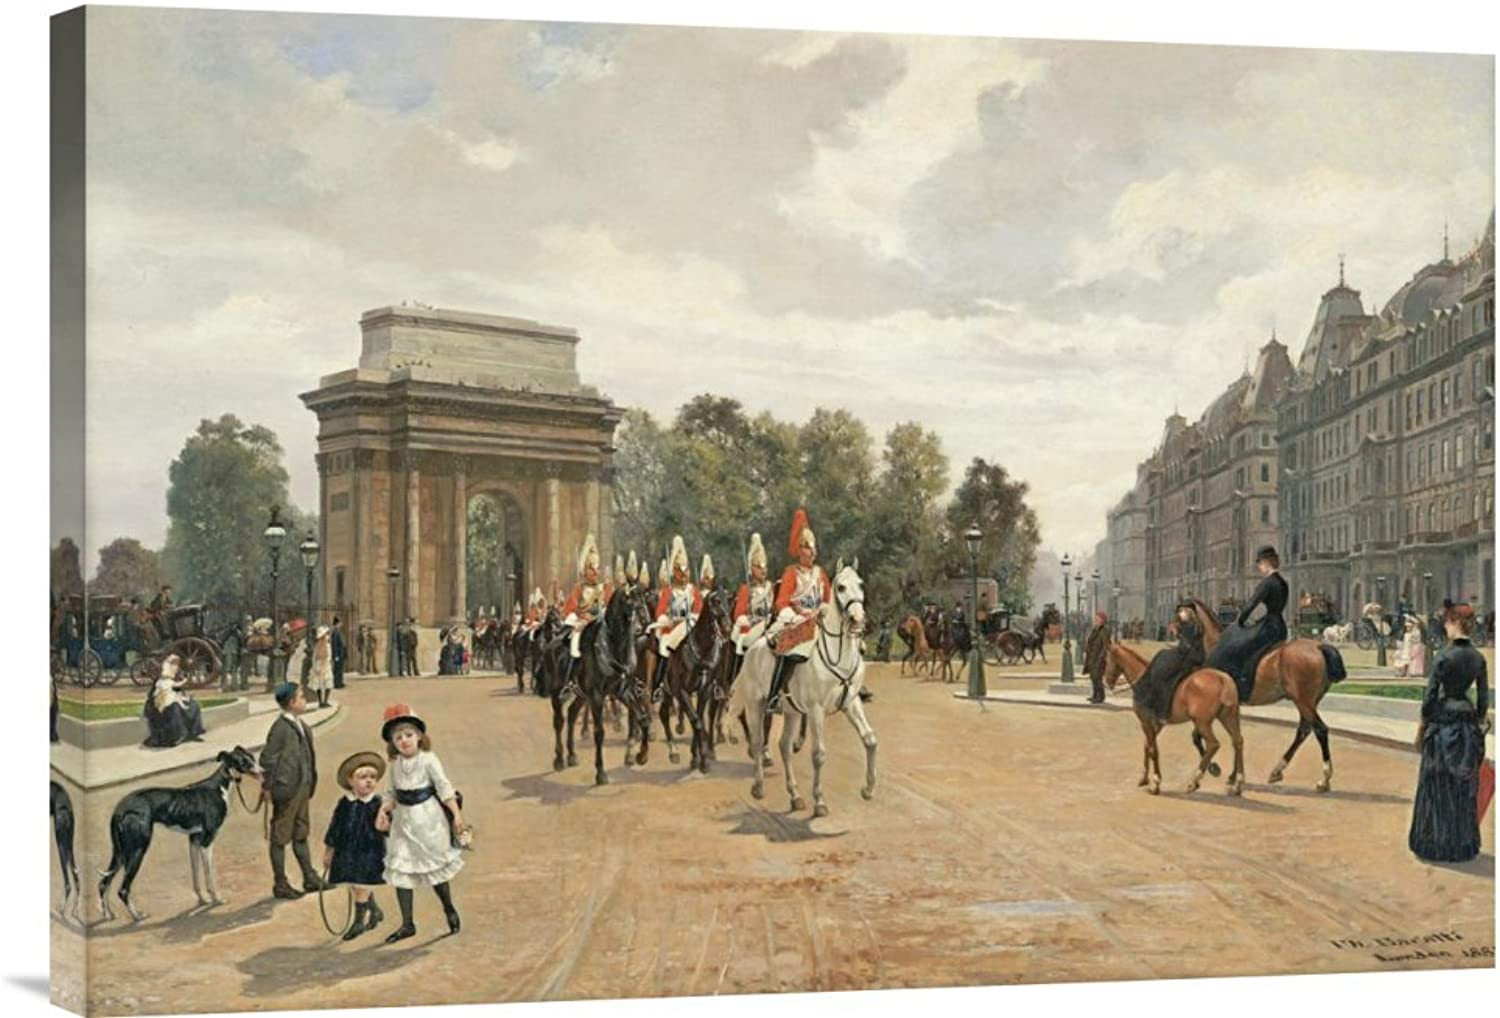 Global Galerie Budget gcs-265895–76,2–360,7 cm Felippo Meer Meer Meer Die Life Guards Passing Hyde Park Ecke London Galerie Wrap Giclée-Kunstdruck auf Leinwand Art Wand B01K1QK7XW | Verrückte Preis